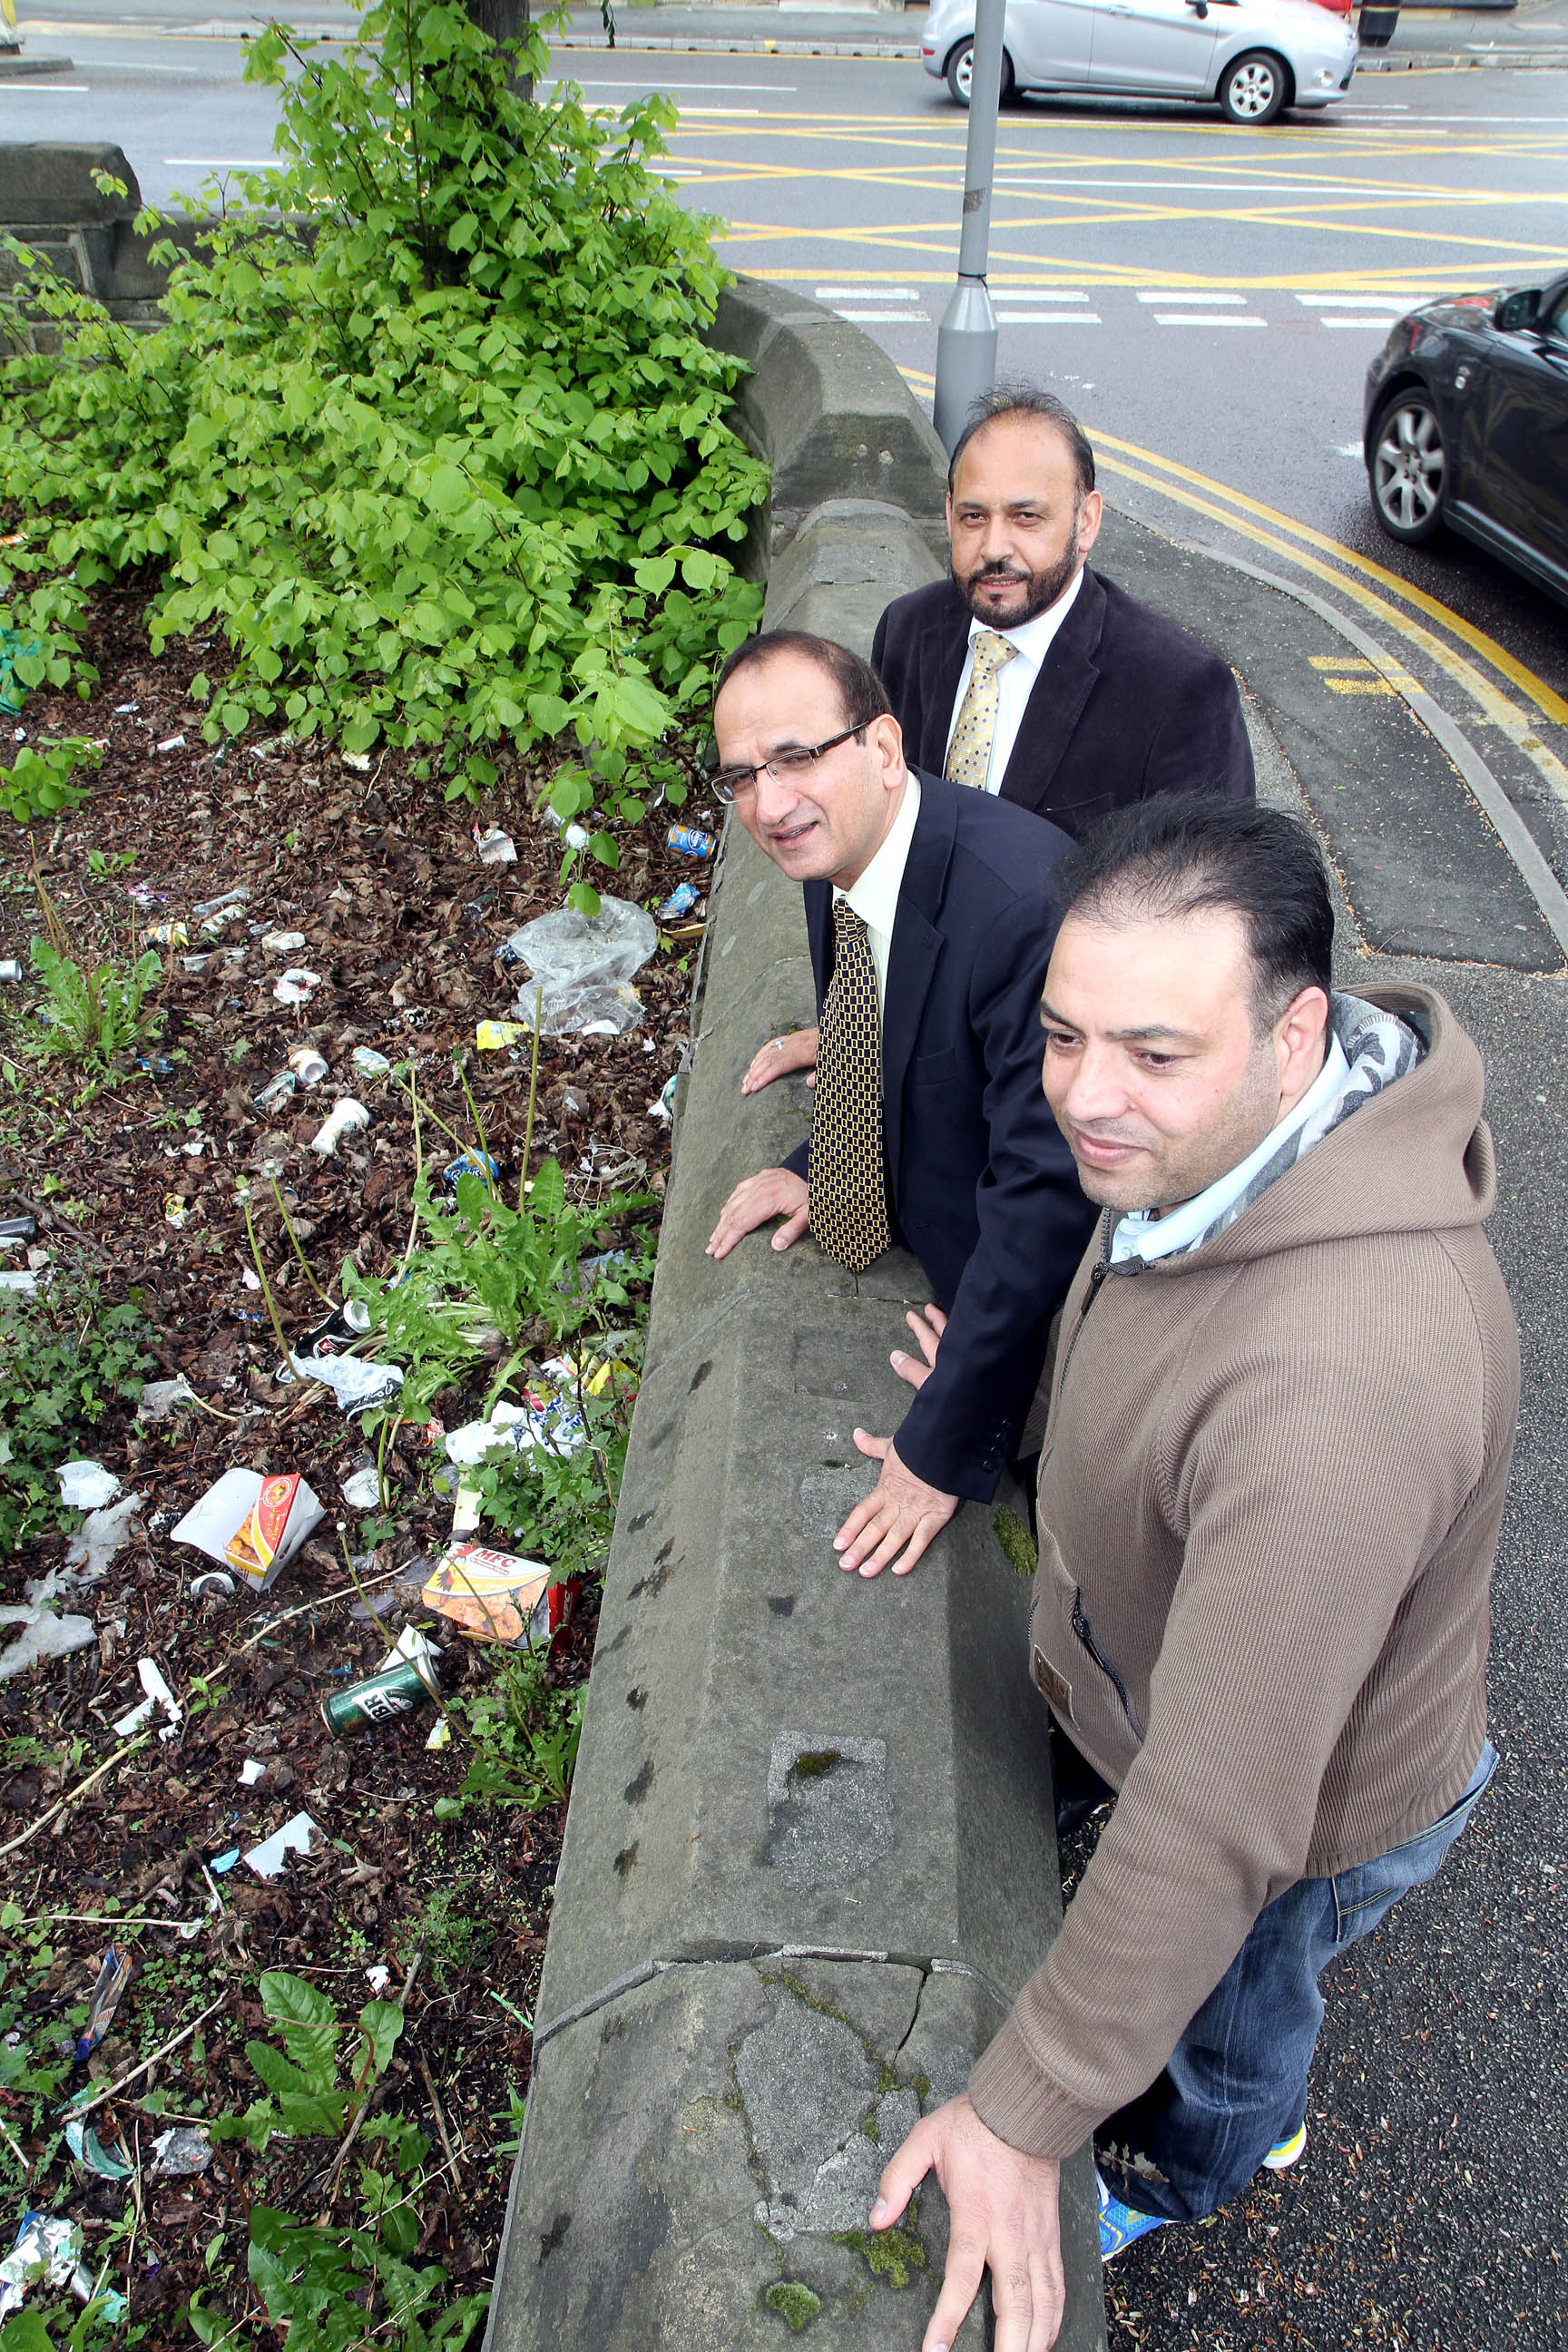 Councillors Abid Hussain, top, and Khadim Hussain with Crown Private Hire driver, Gulfraz Hussain, front, inspecting litter at the former Keighley College car park